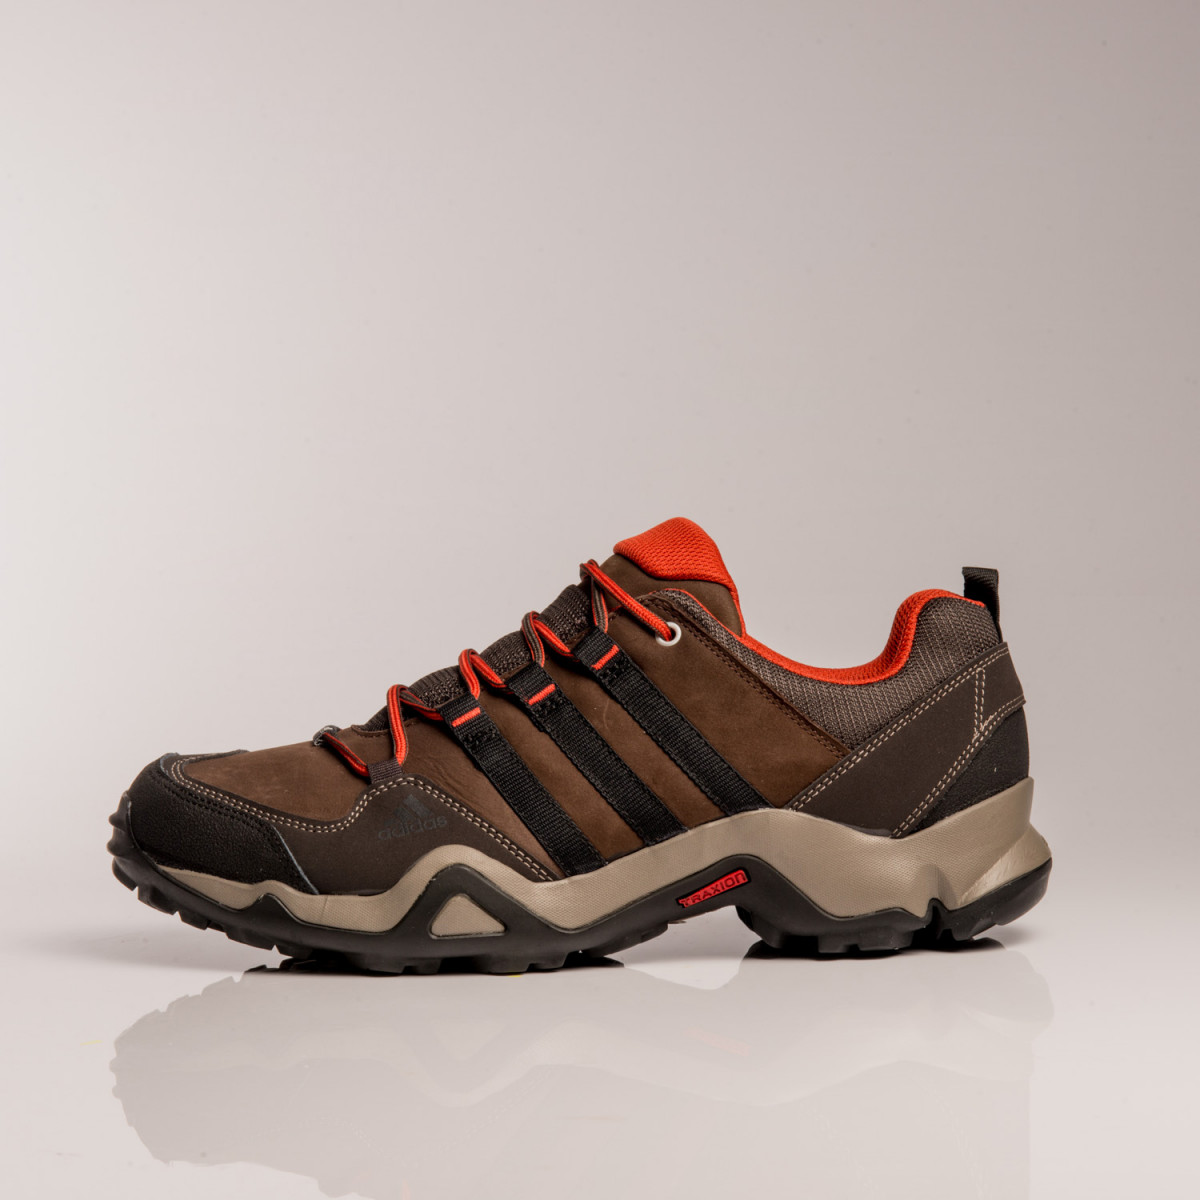 ZAPATILLAS ADIDAS BRUSHWOOD